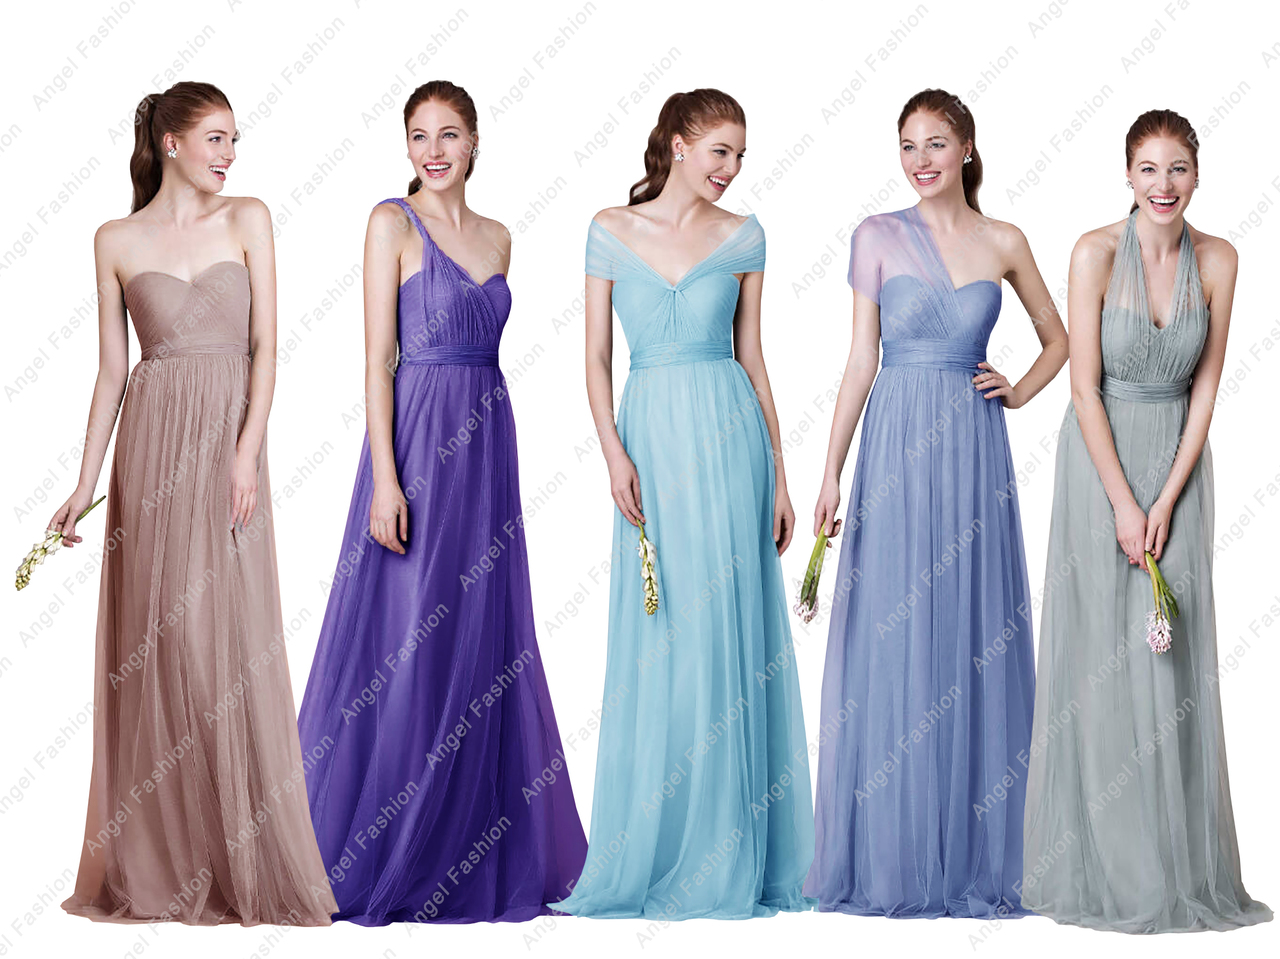 Long Chiffon Convertible Multi Way Prom Bridesmaid